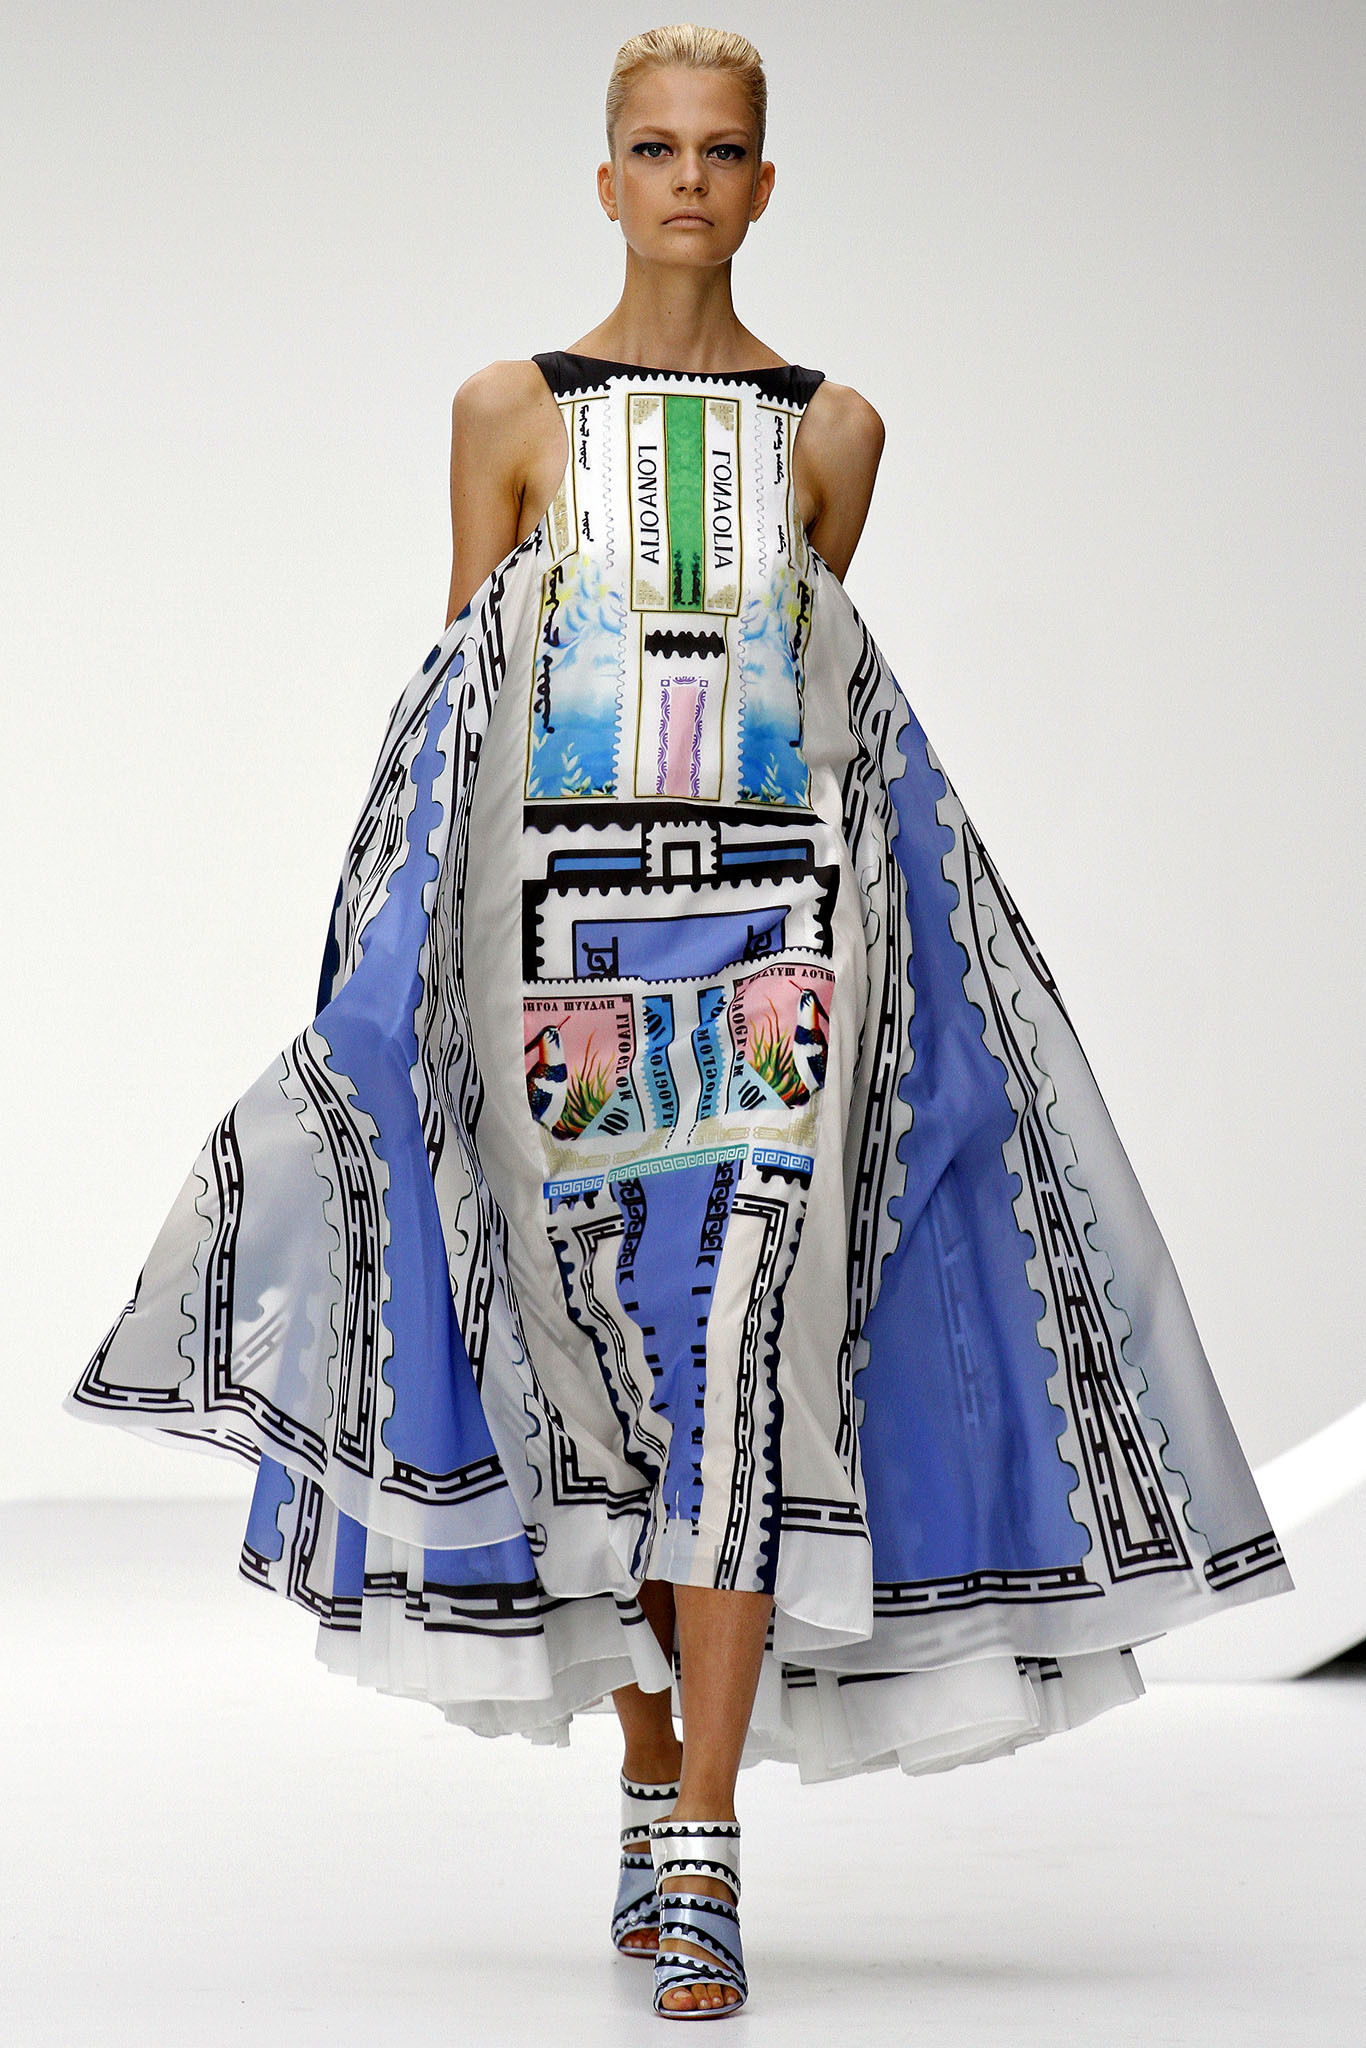 London Fashion Week S/S 2013: Mary Katrantzou